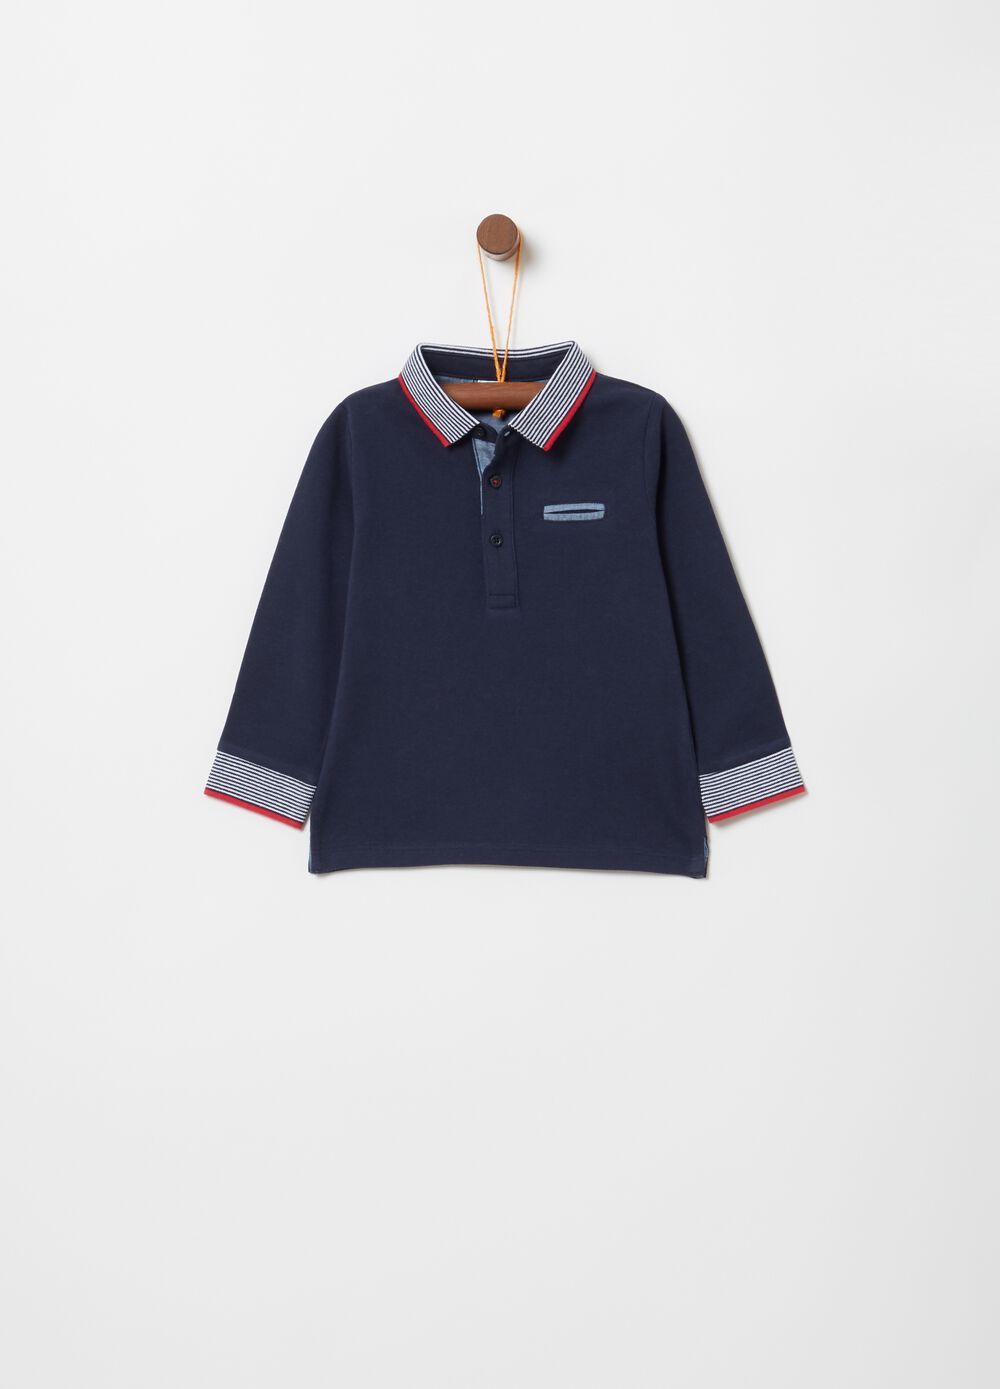 100% organic cotton polo shirt with long sleeves